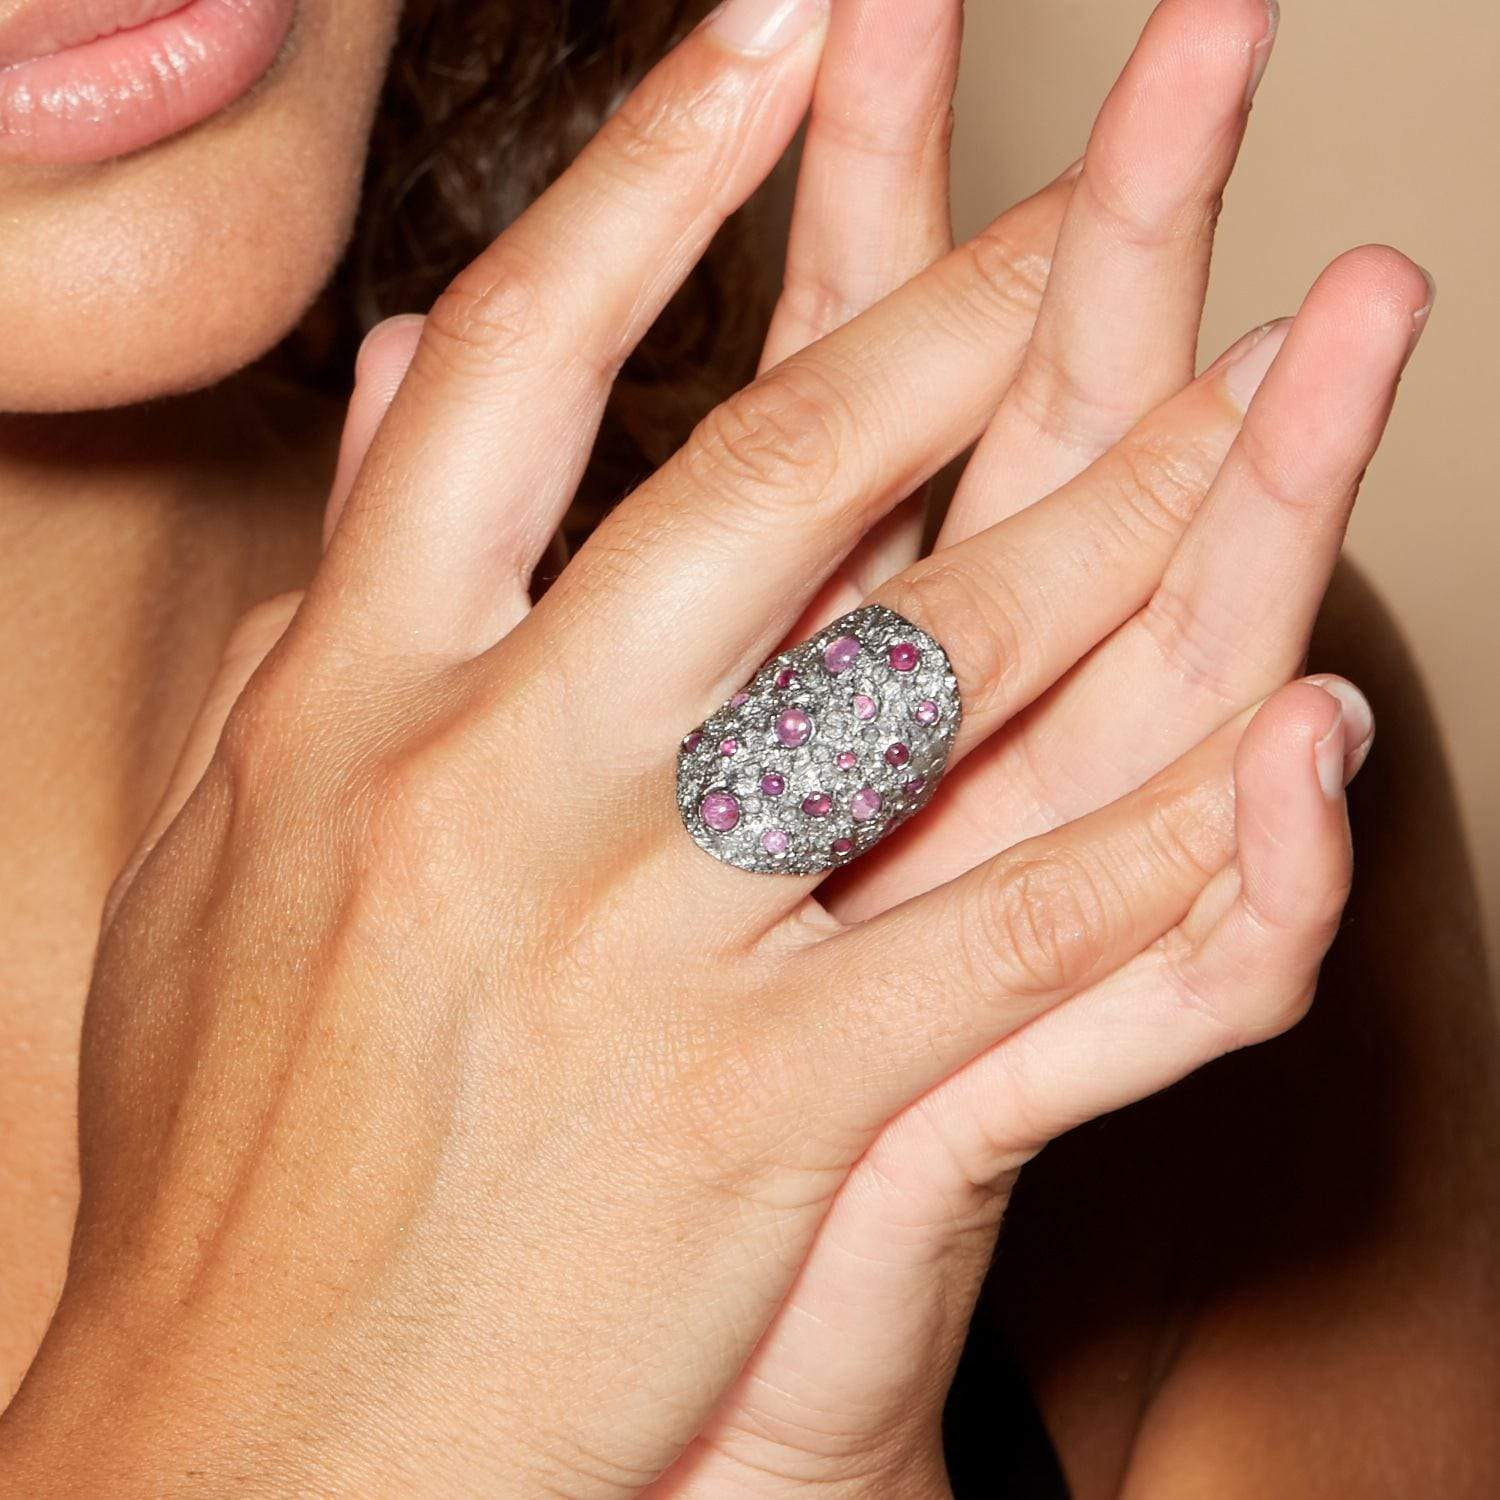 Eryma Ring, gray, Handmade, Rhodium, Ruby, spo-disabled, StoneColor:PinkRuby, Style:Everyday, Type:StoneCandyScattered Ring